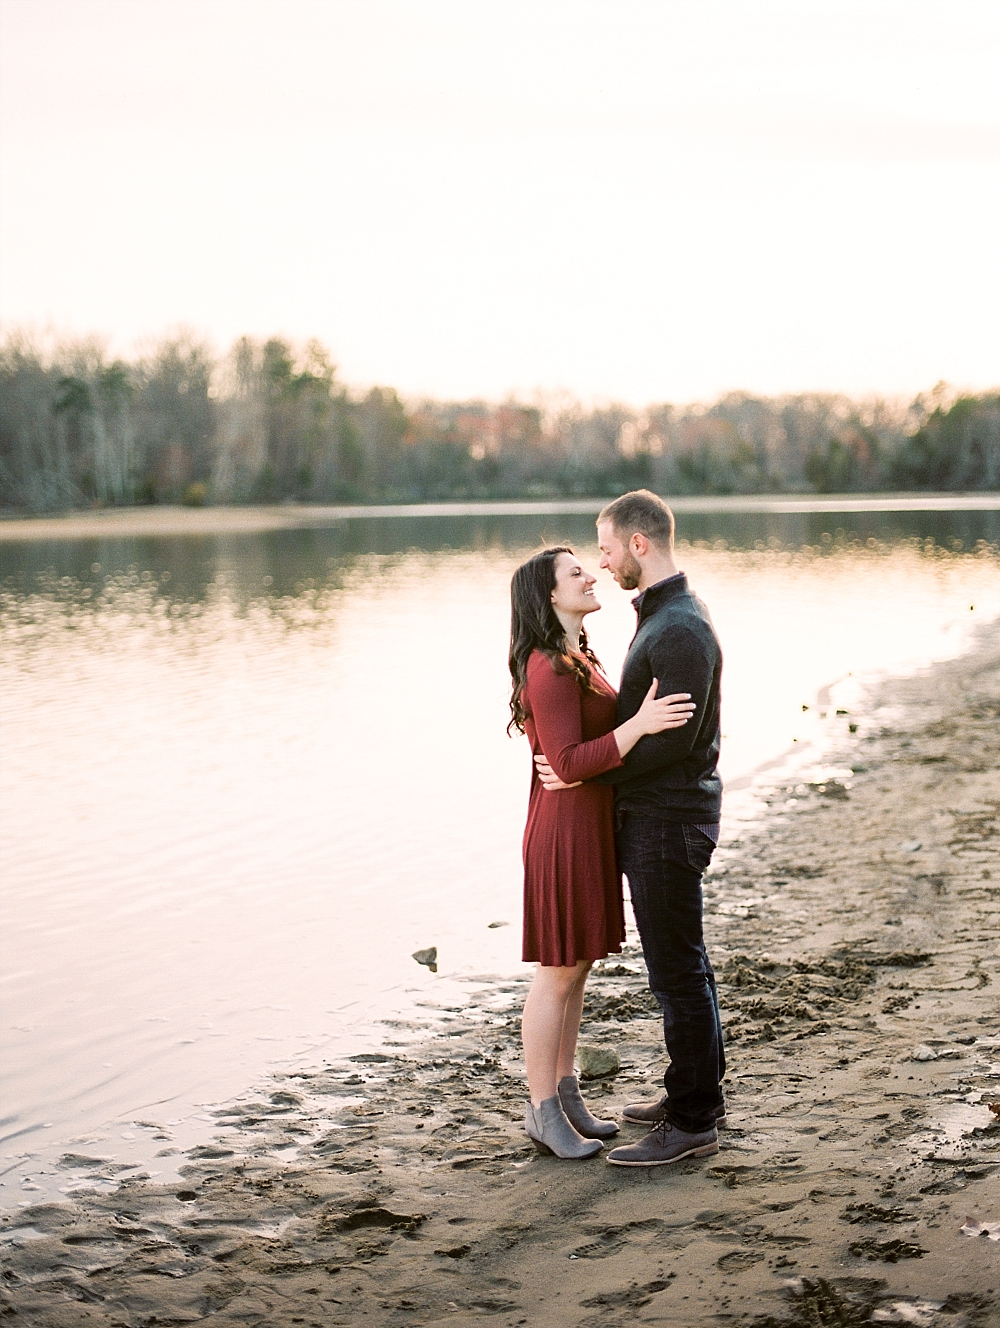 JuicebeatsPhotography_KnoxvilleEngagement_Kristina&Ben_0048.jpg